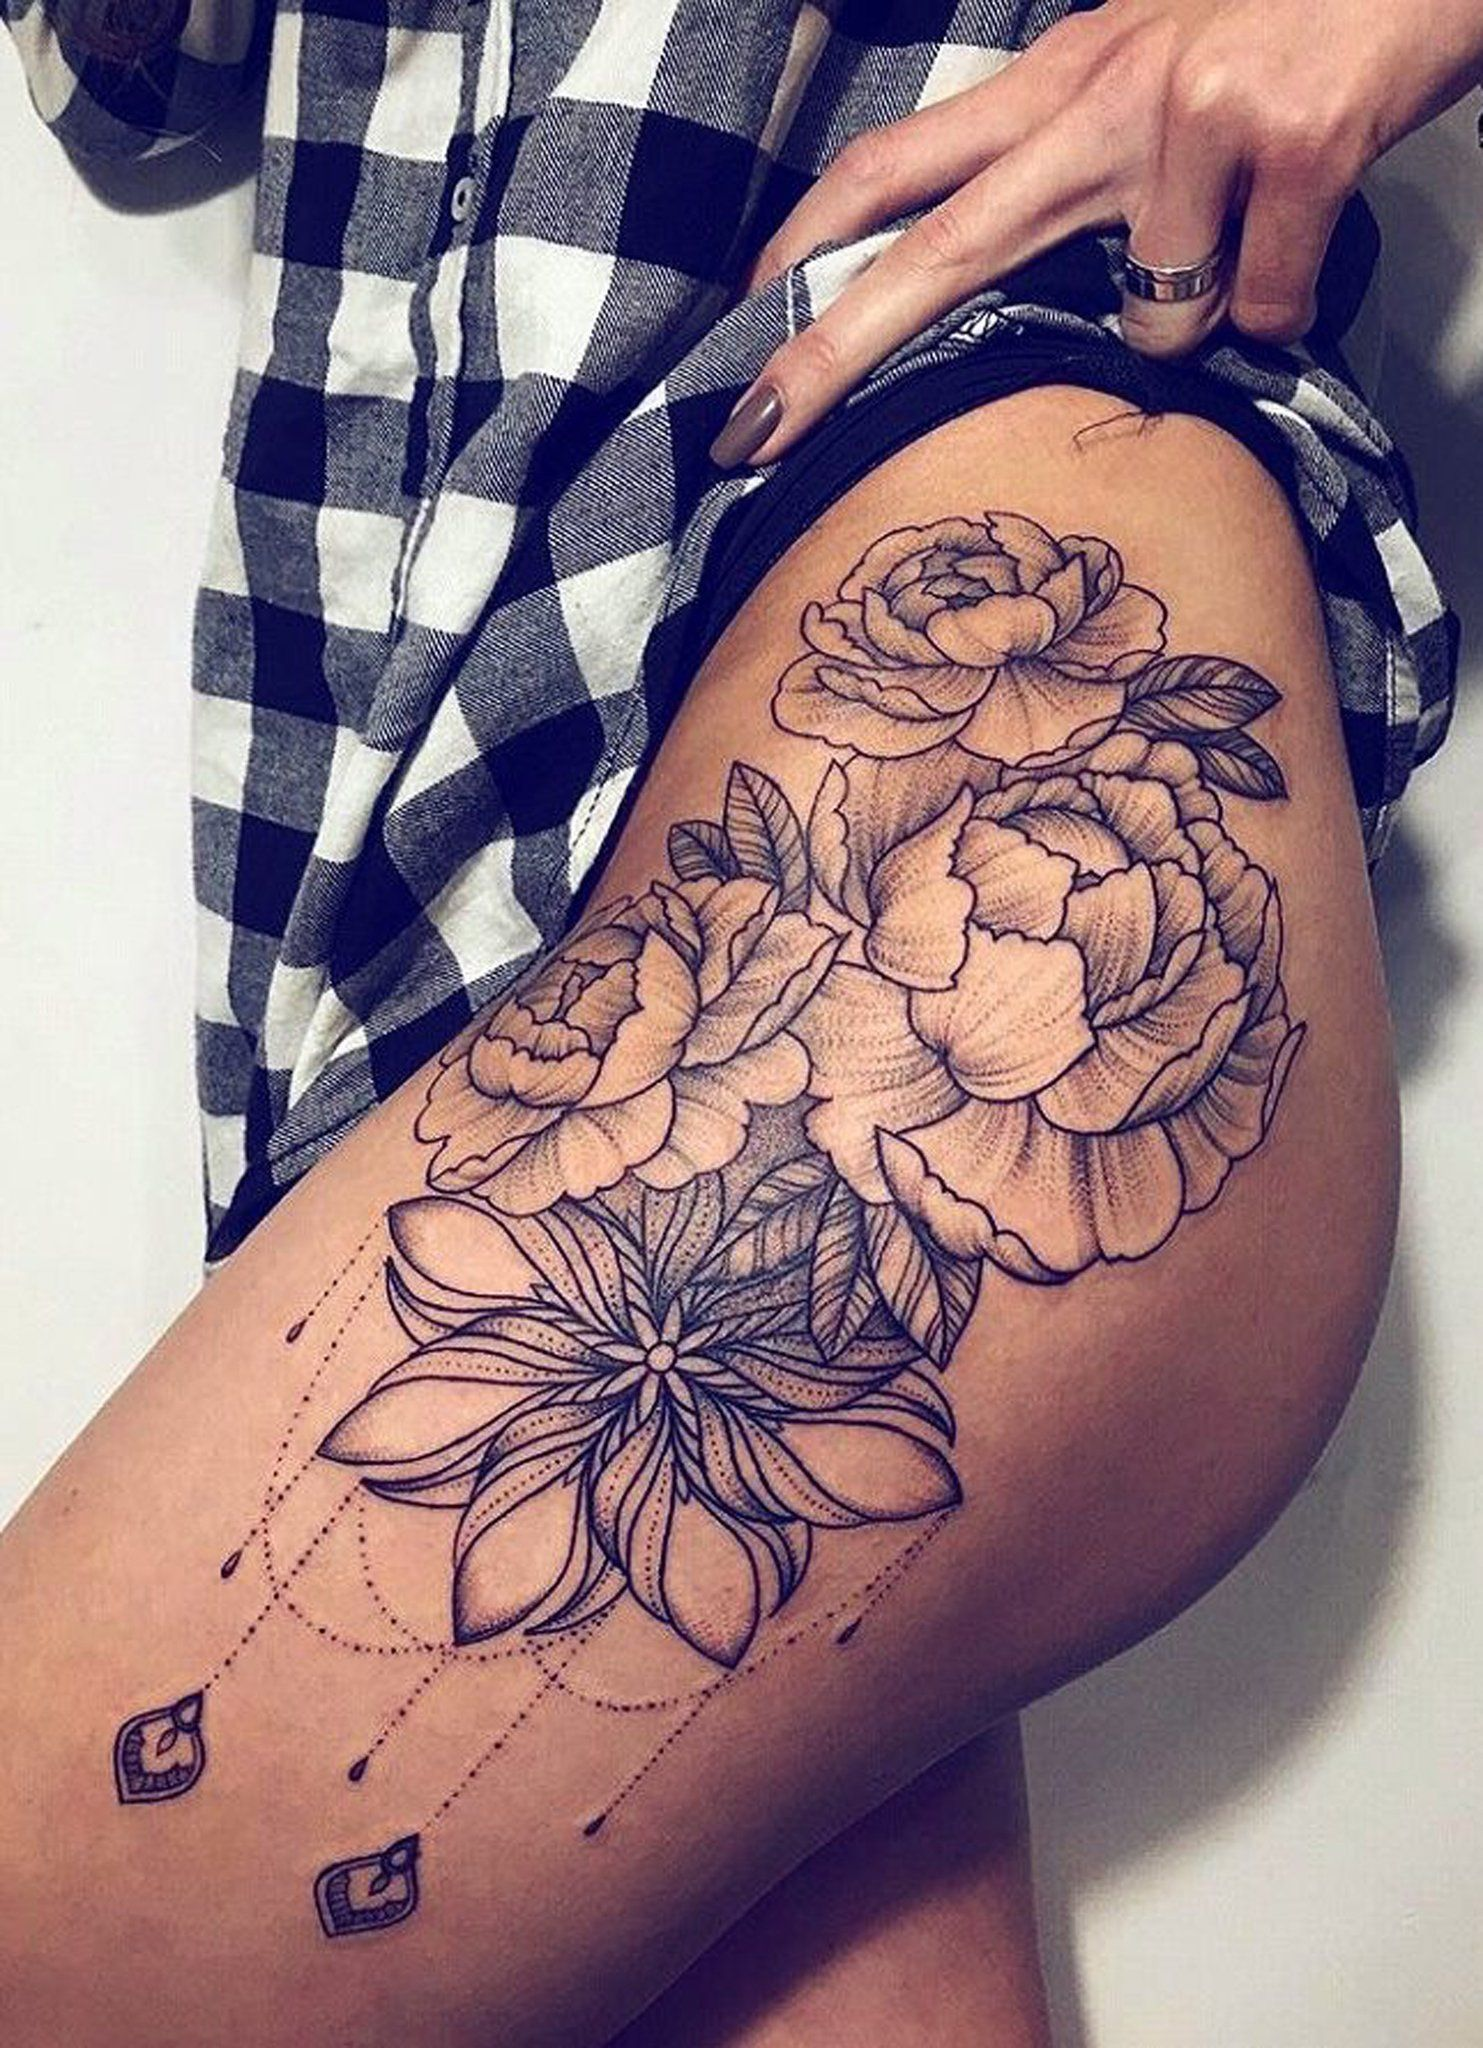 Tattoo Oberschenkel Blumen 30 Women S Badass Hip Tattoo Ideas Fußtattoos Tatuajes Muslo